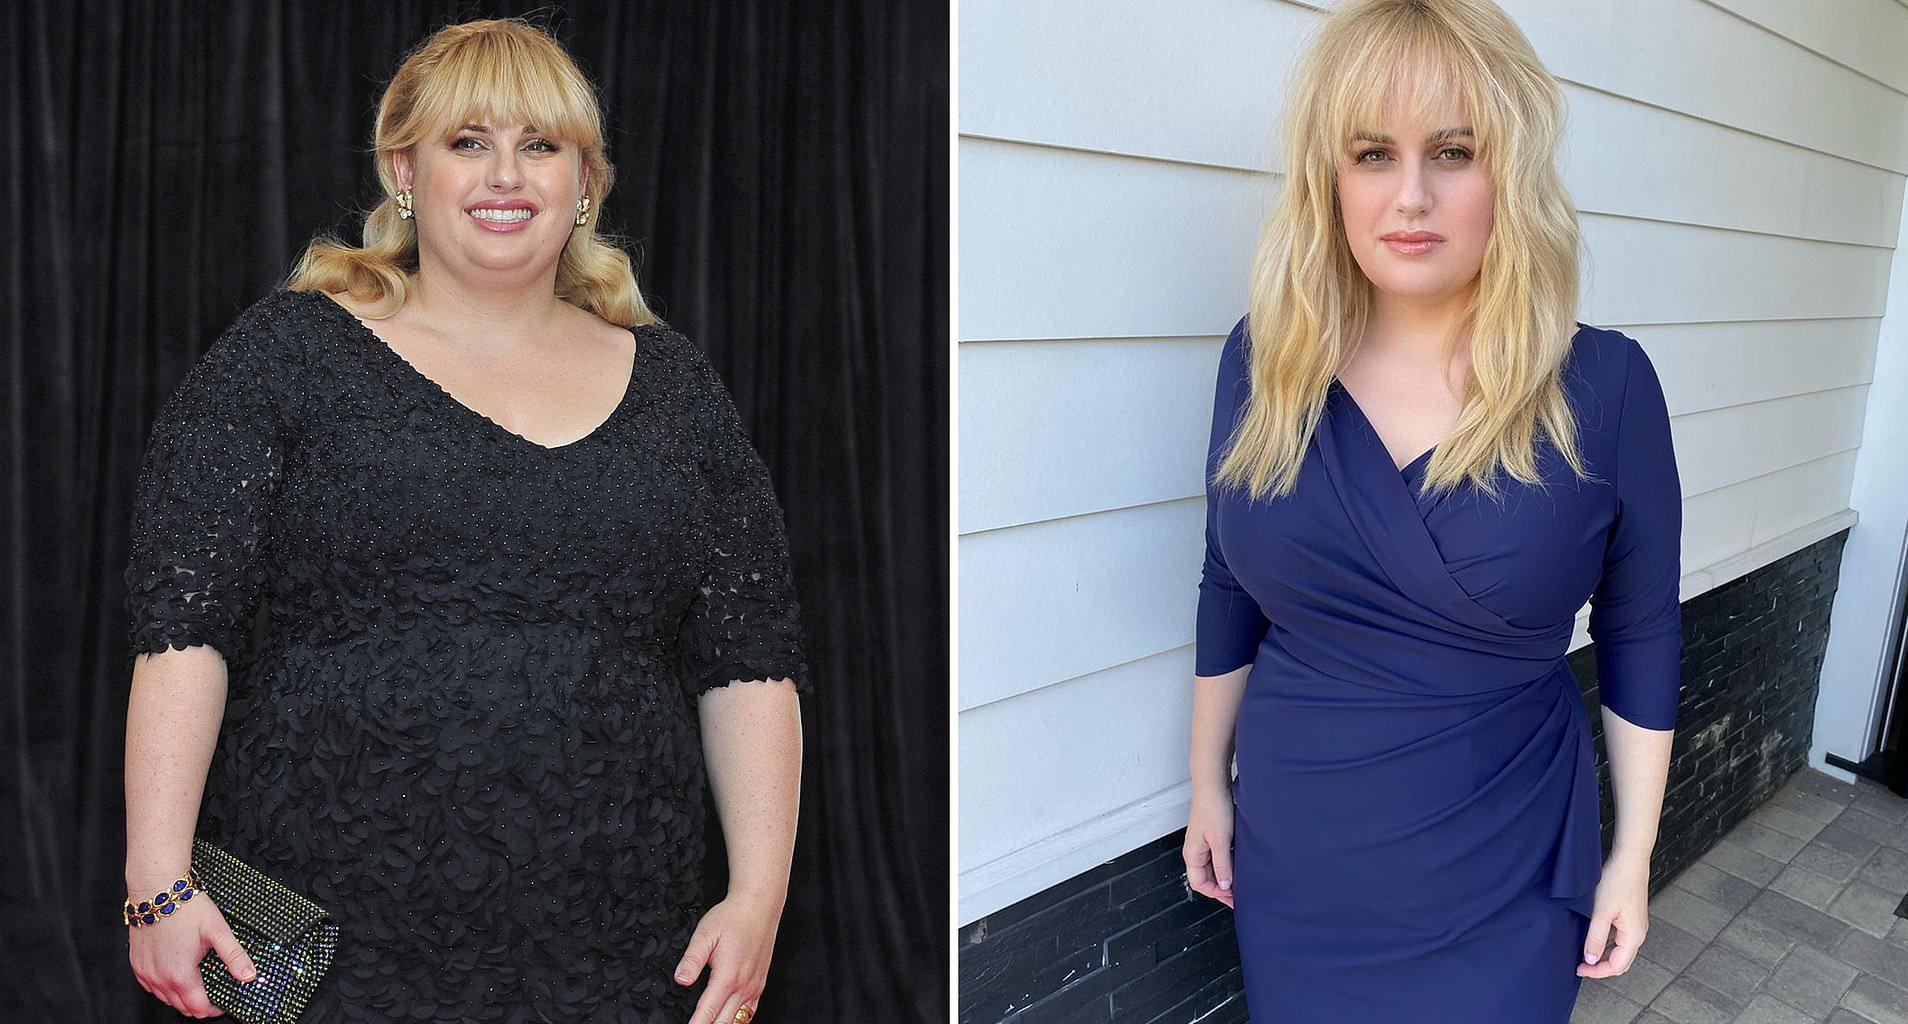 Rebel Wilson Stuns In Gorgeous Blue Dress After Losing 40 Pounds!